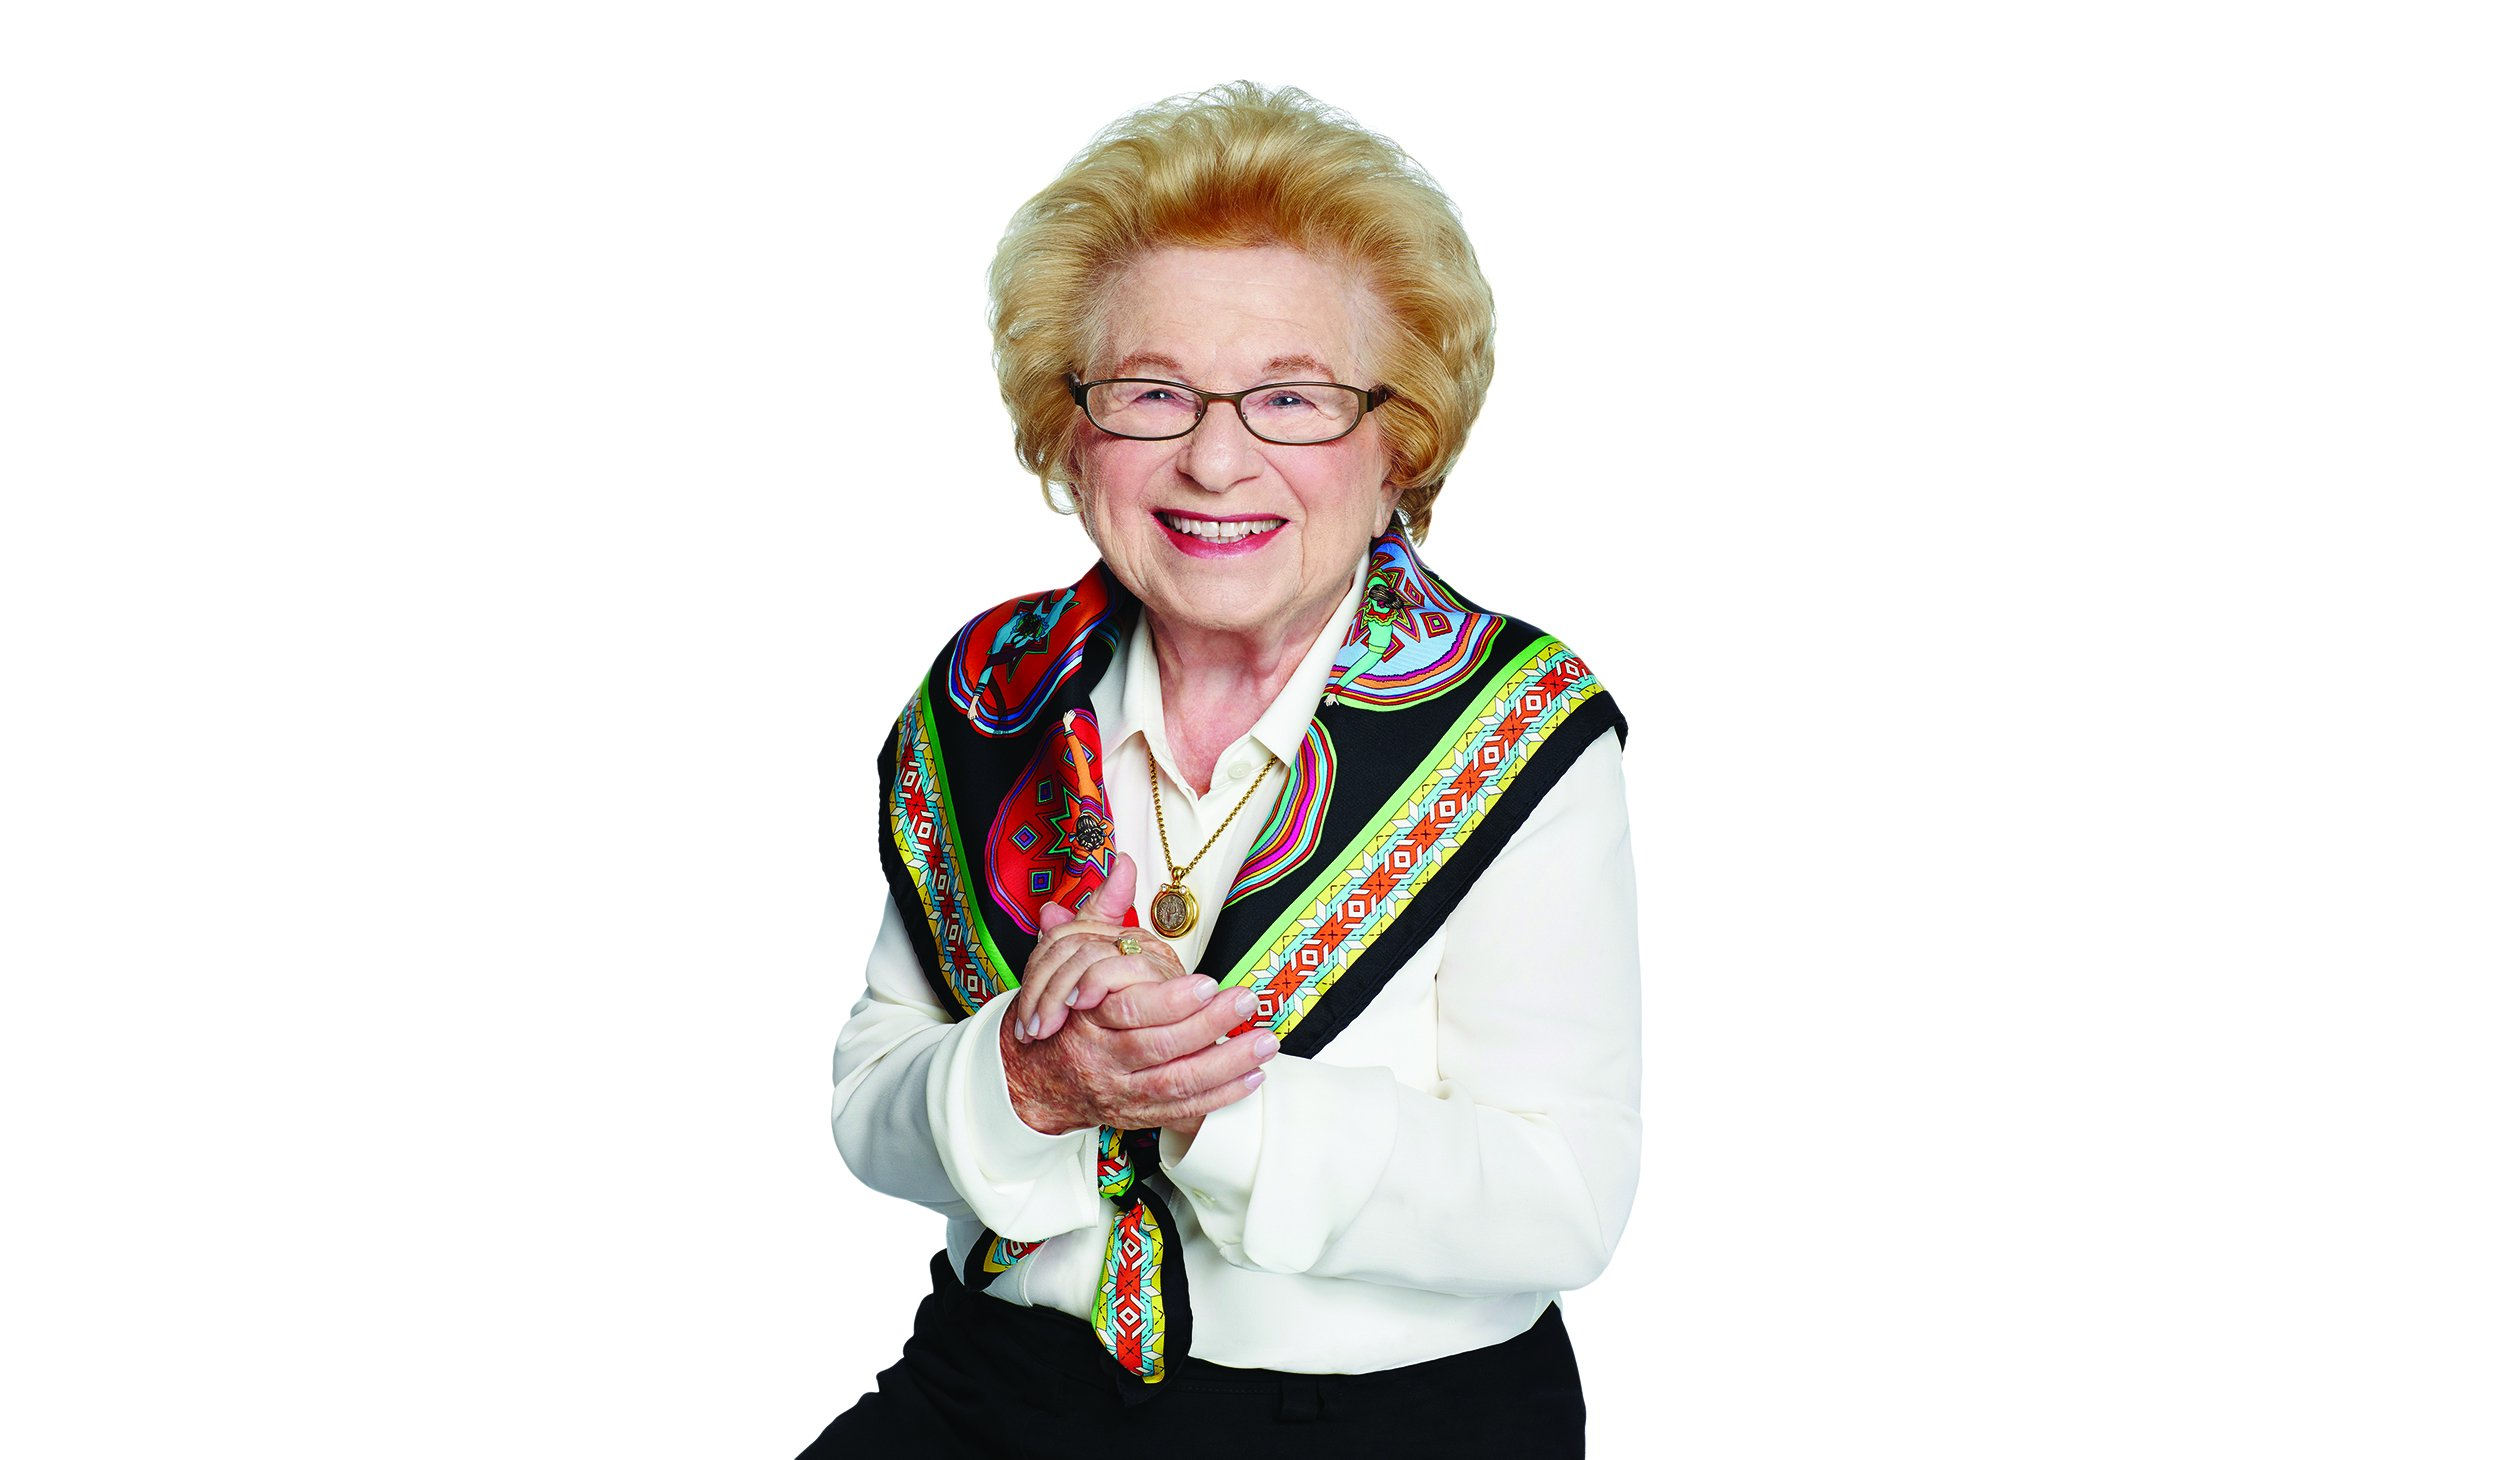 Dr ruth westheimer a midget was and